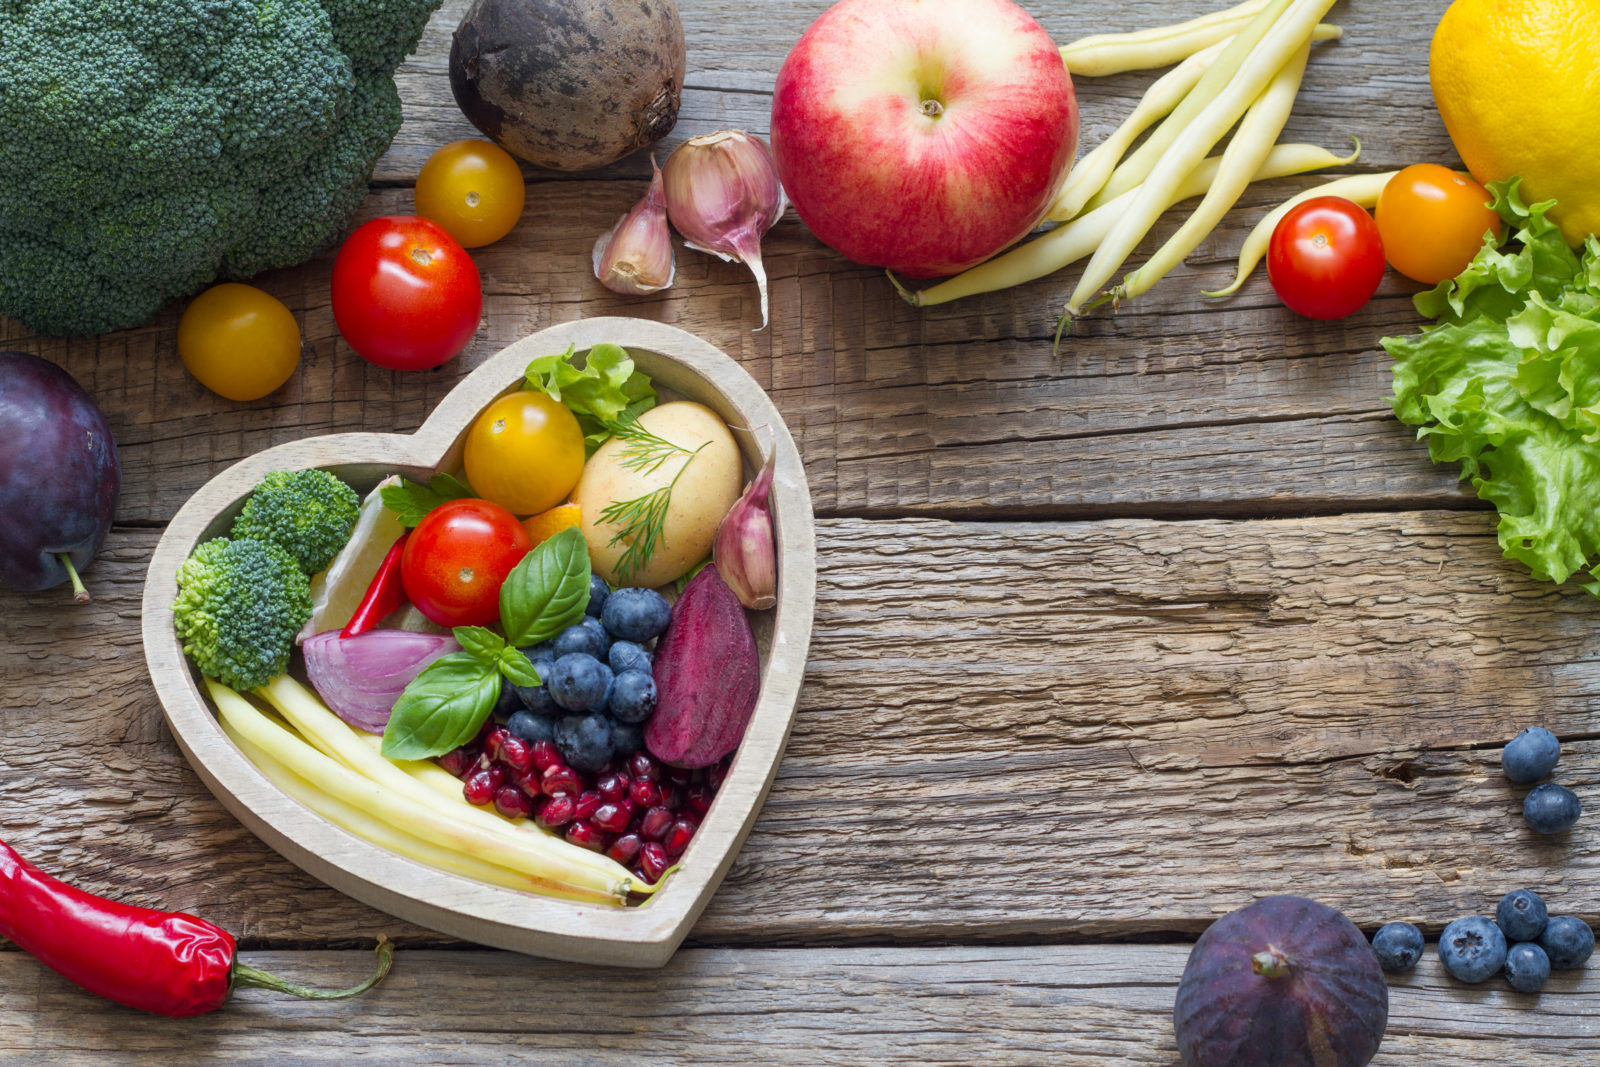 Heart Healthy Diet Tips for American Heart Month